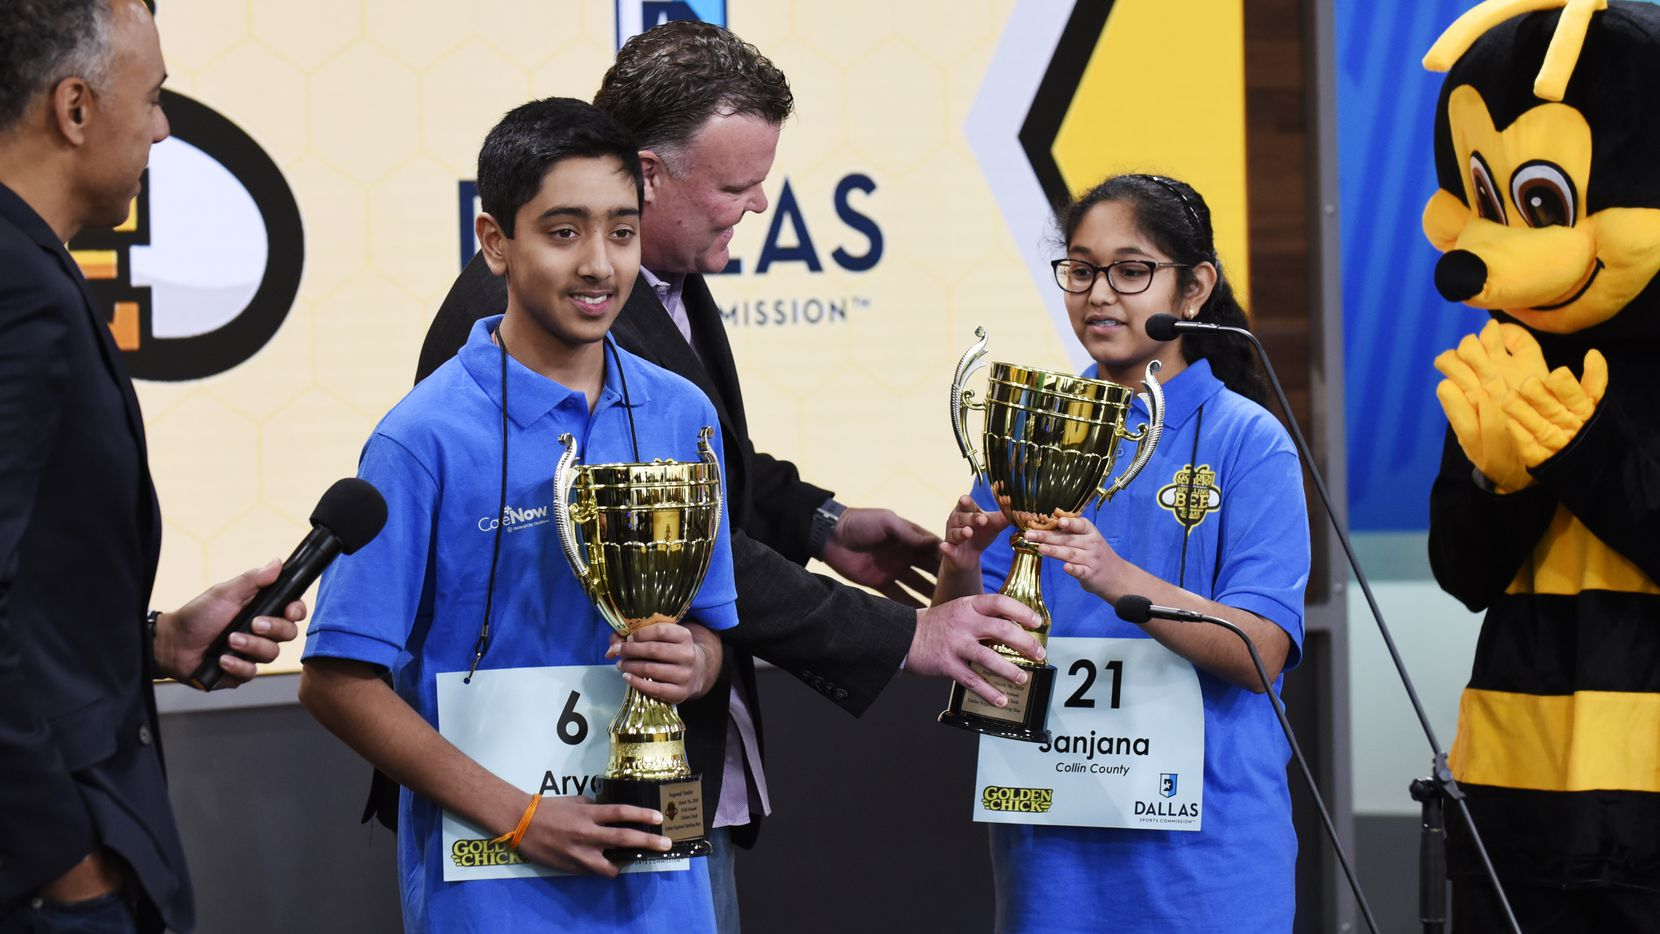 Golden Chick President Jim Stevens hands Dallas Regional Spelling Bee championship trophies to Arya Reddyvari (left) and Sanjana Kota, both of Collin County, as the 8th graders shared the championship after 26 rounds of competition.